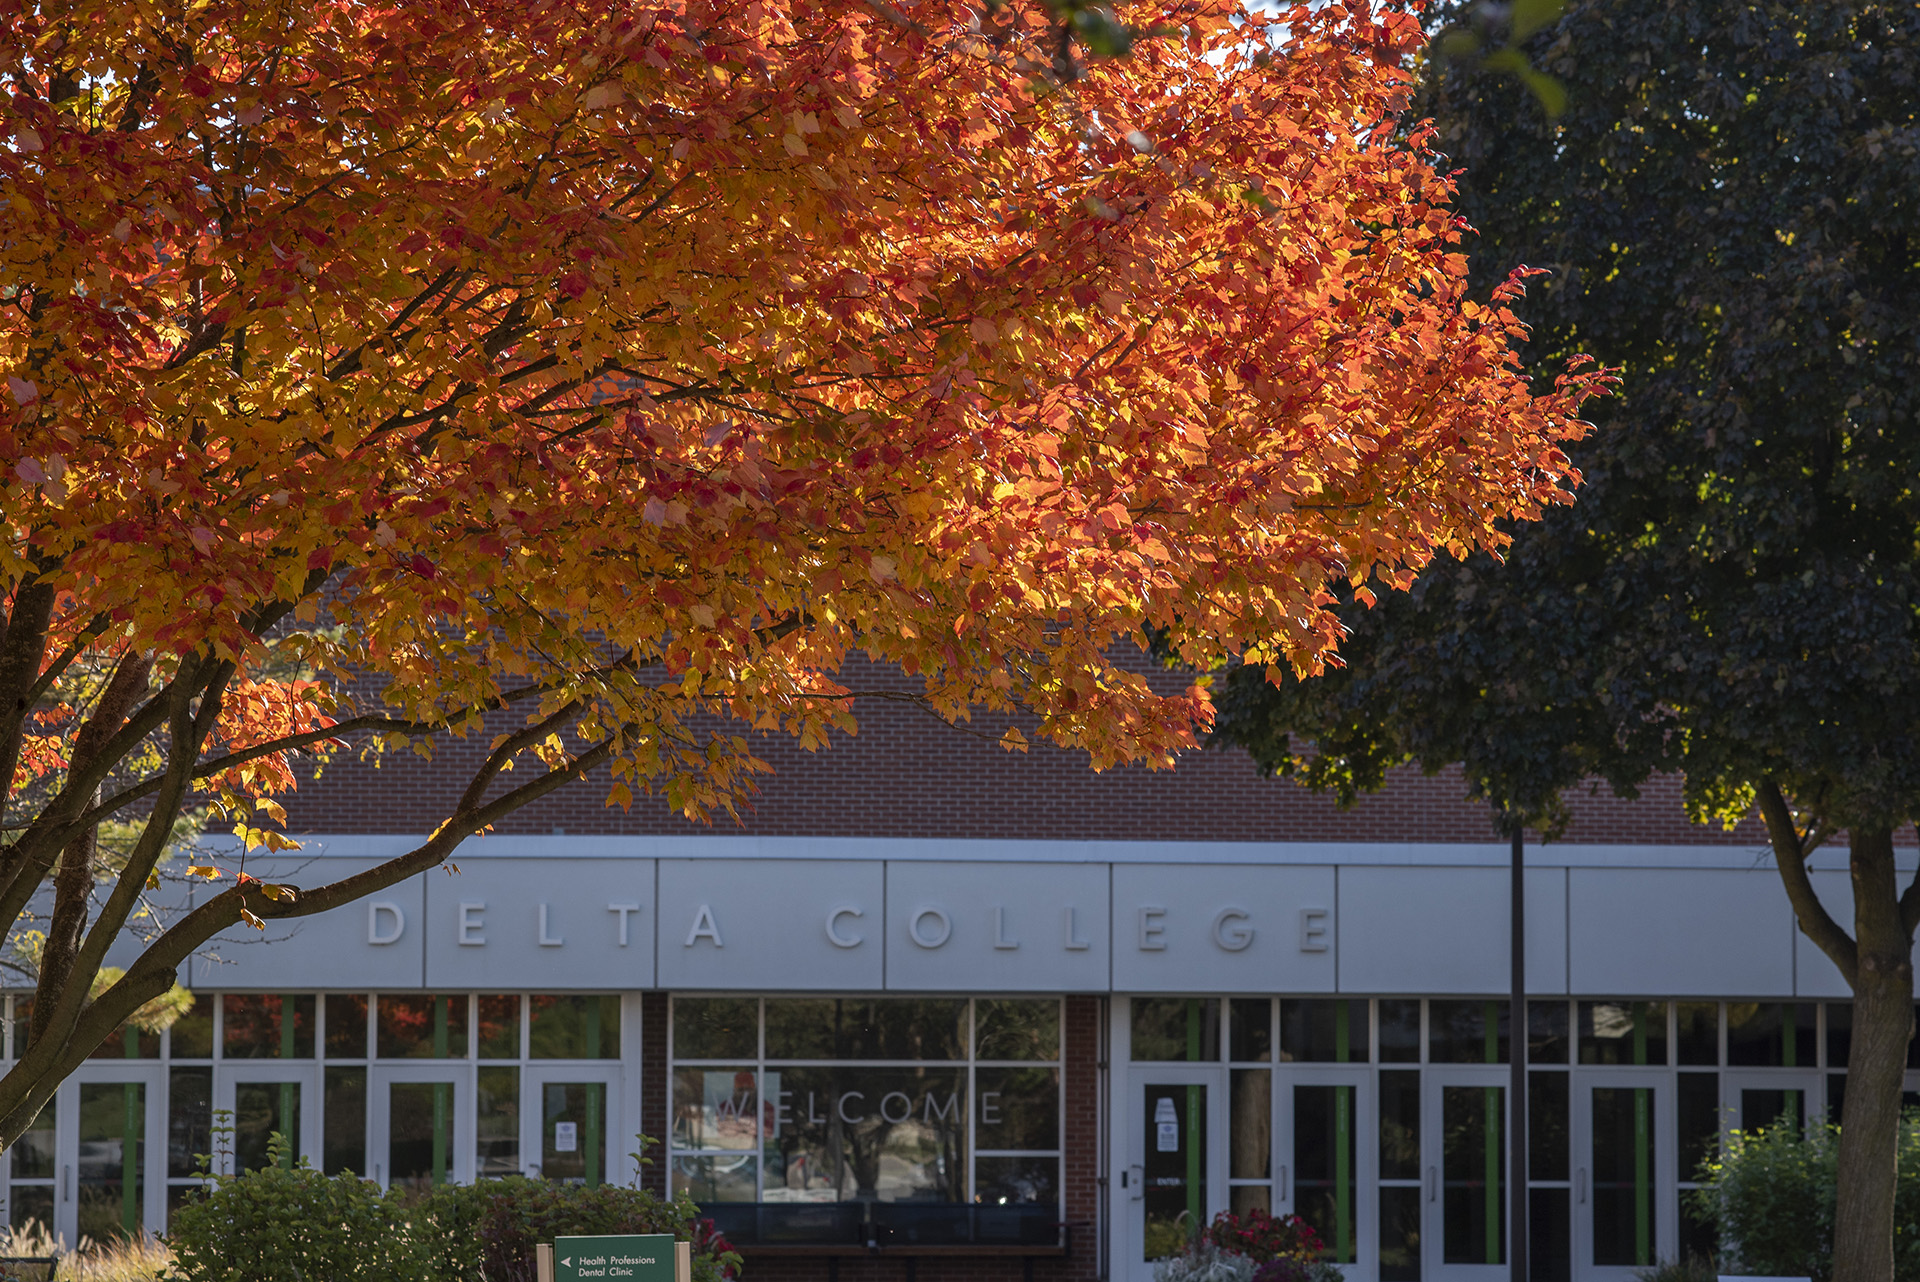 Campus looks beautiful during all seasons, especially fall.